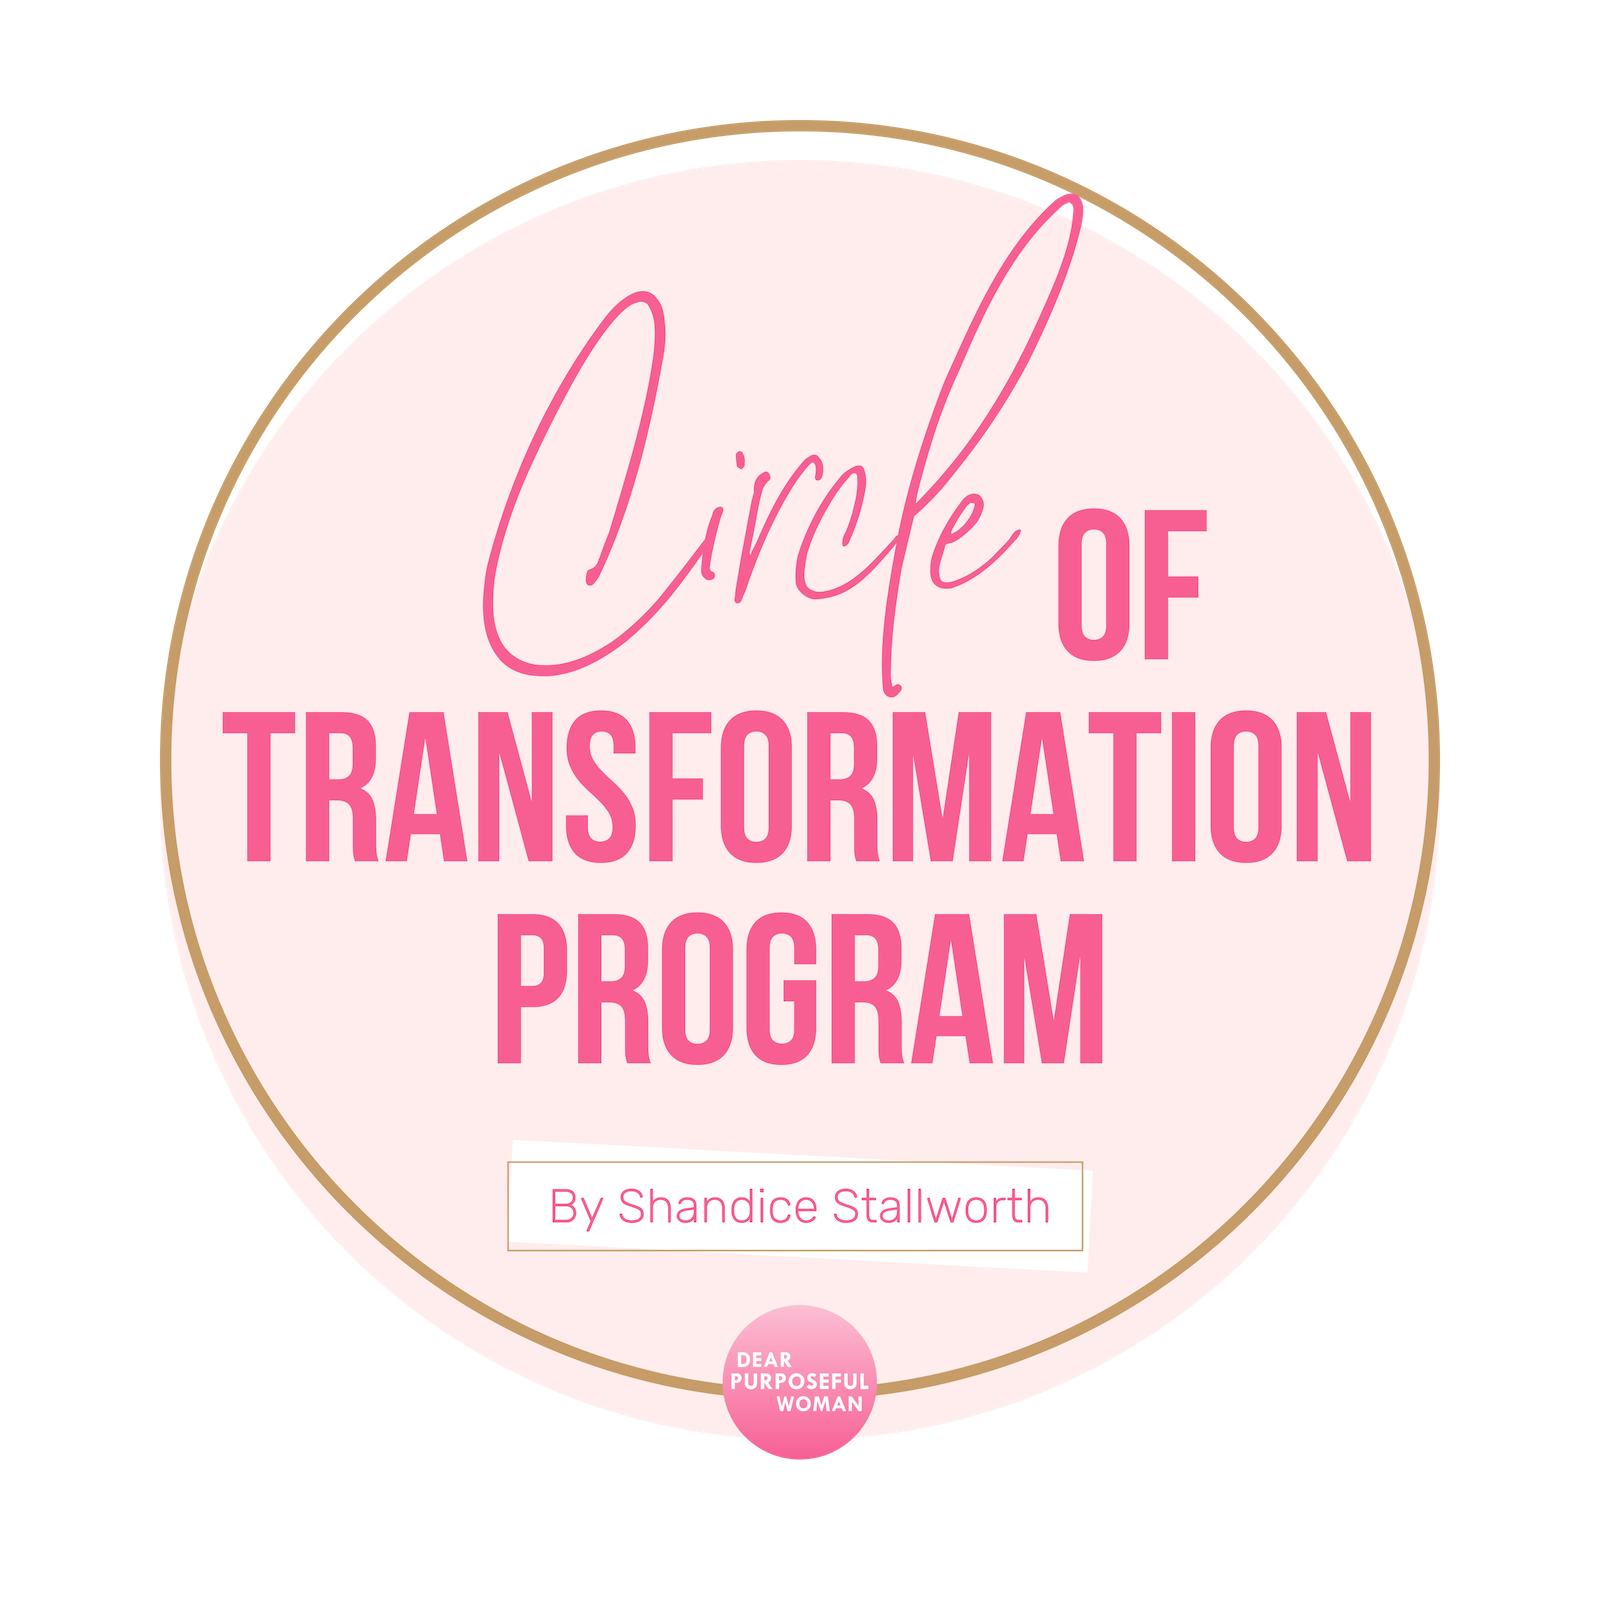 Dear purposeful Woman - Circle of Transformation Program By Shandice Stallworth.png